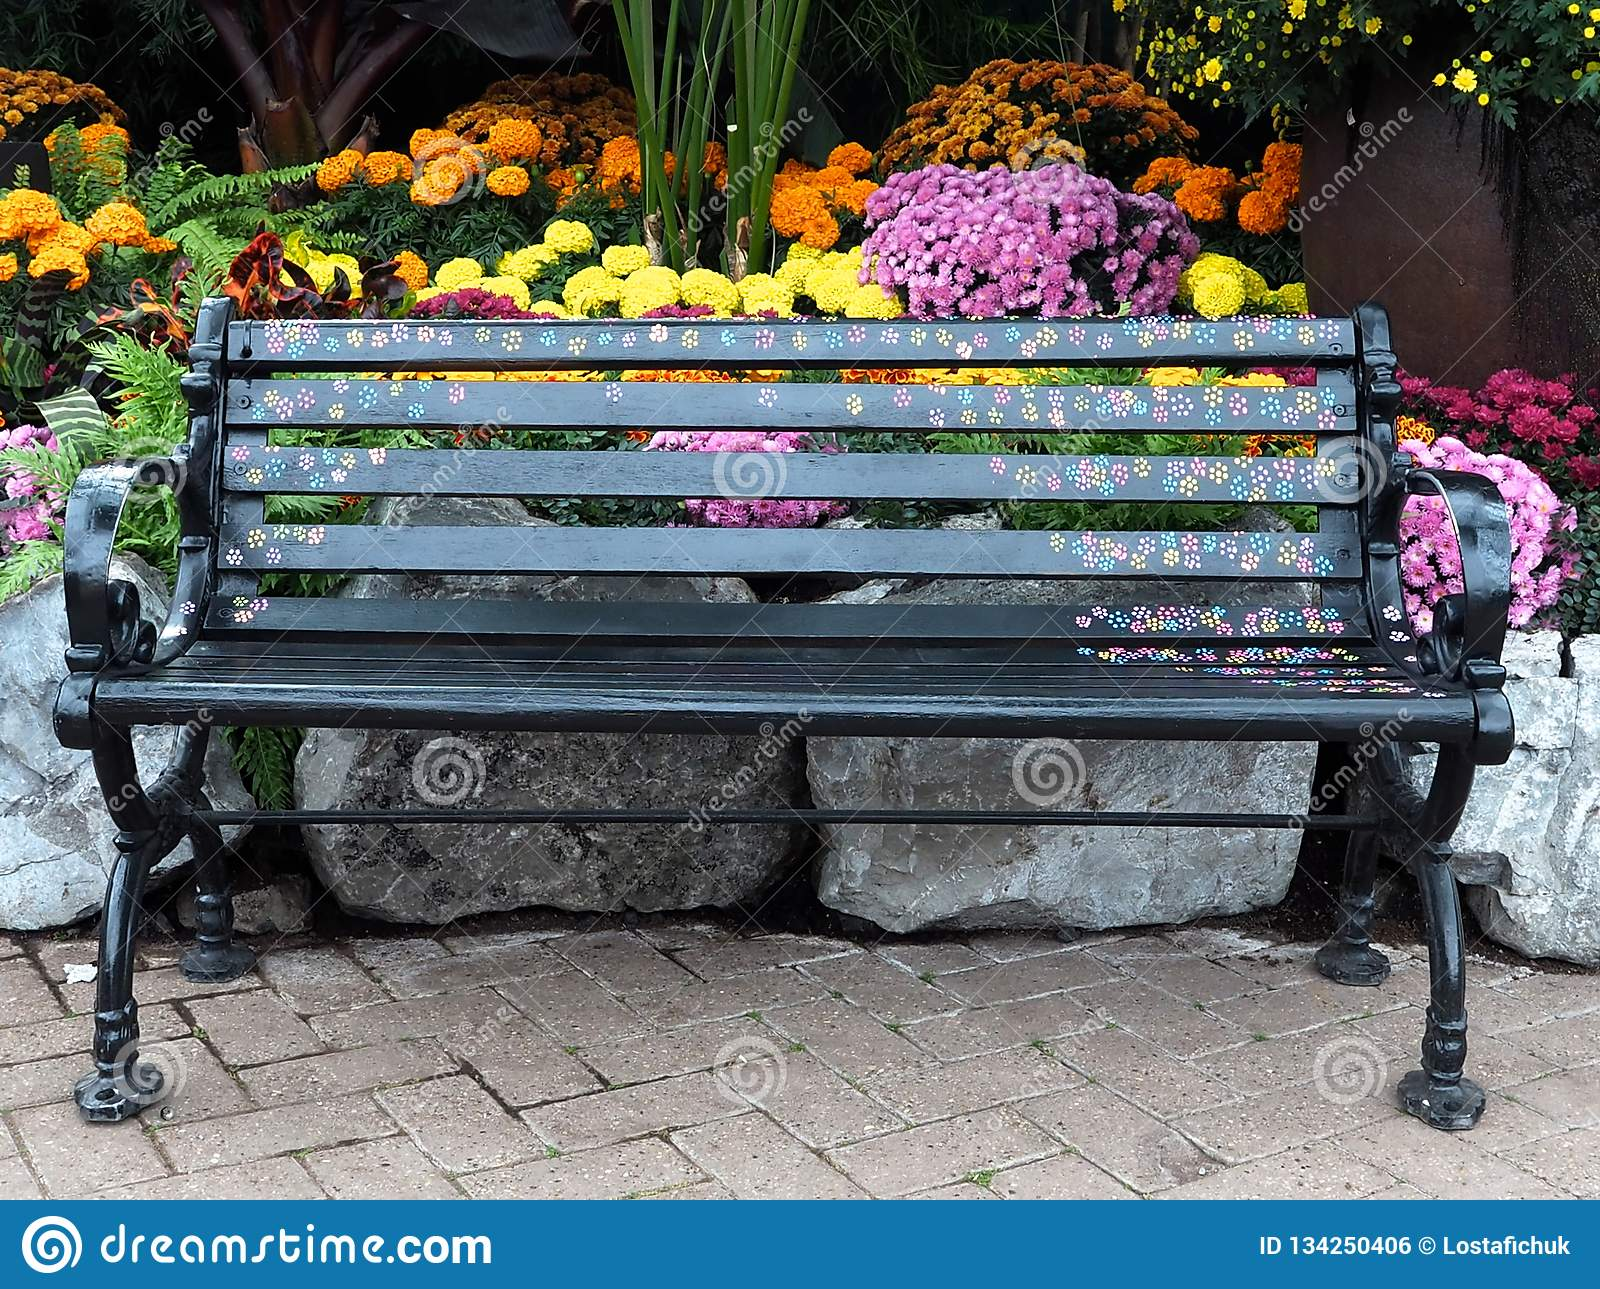 Painted Bench With Flowers In Greenhouse